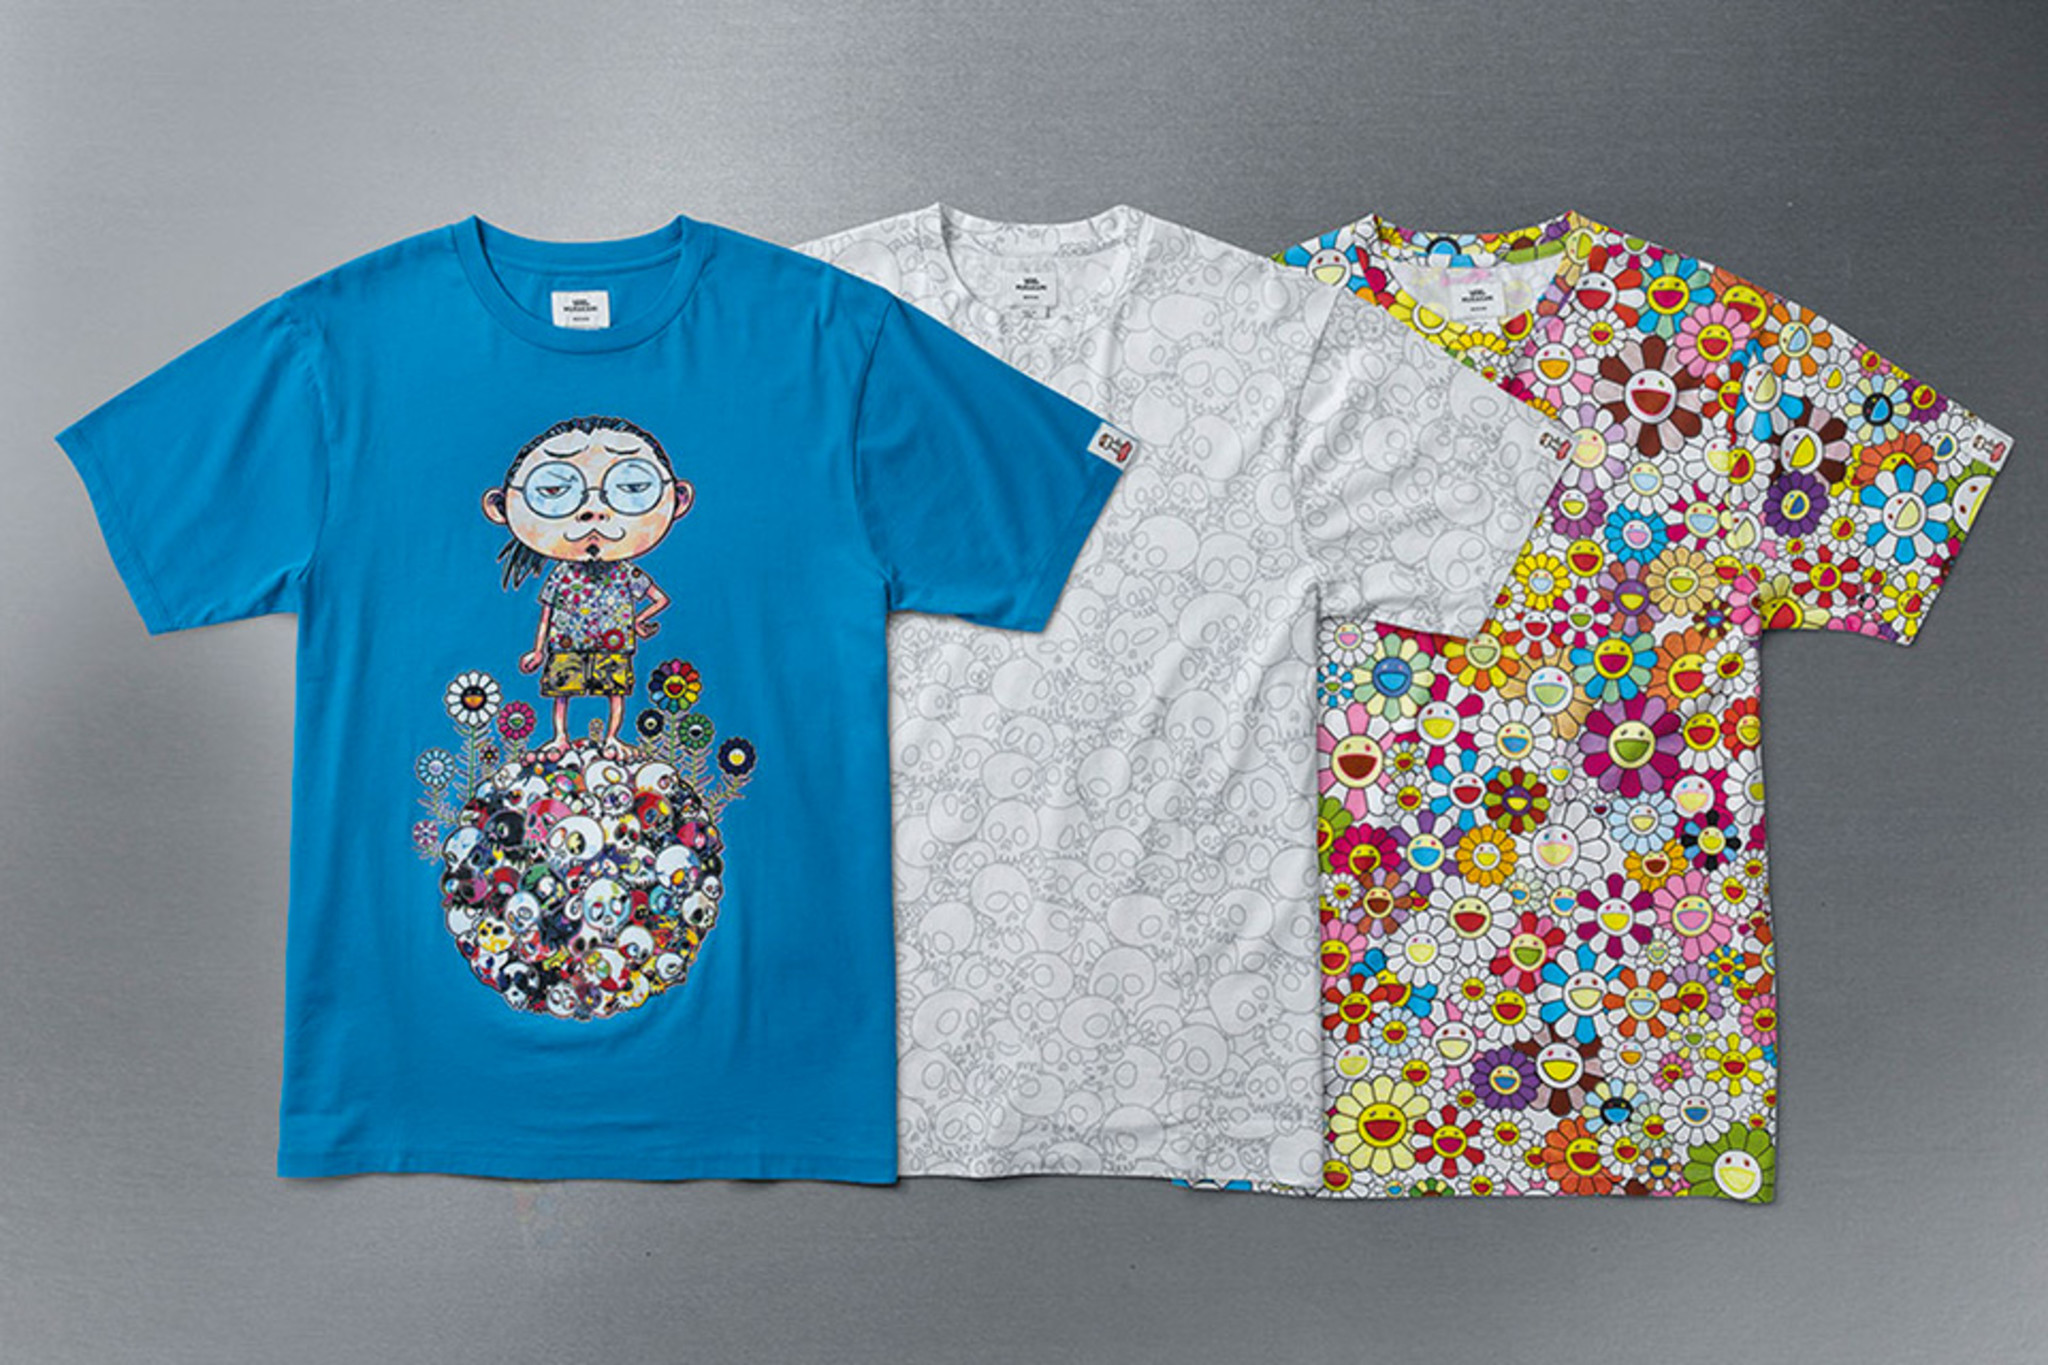 90fb67ad09 Lilia Gjerstad » Vault by Vans x Takashi Murakami Collaborate on ...